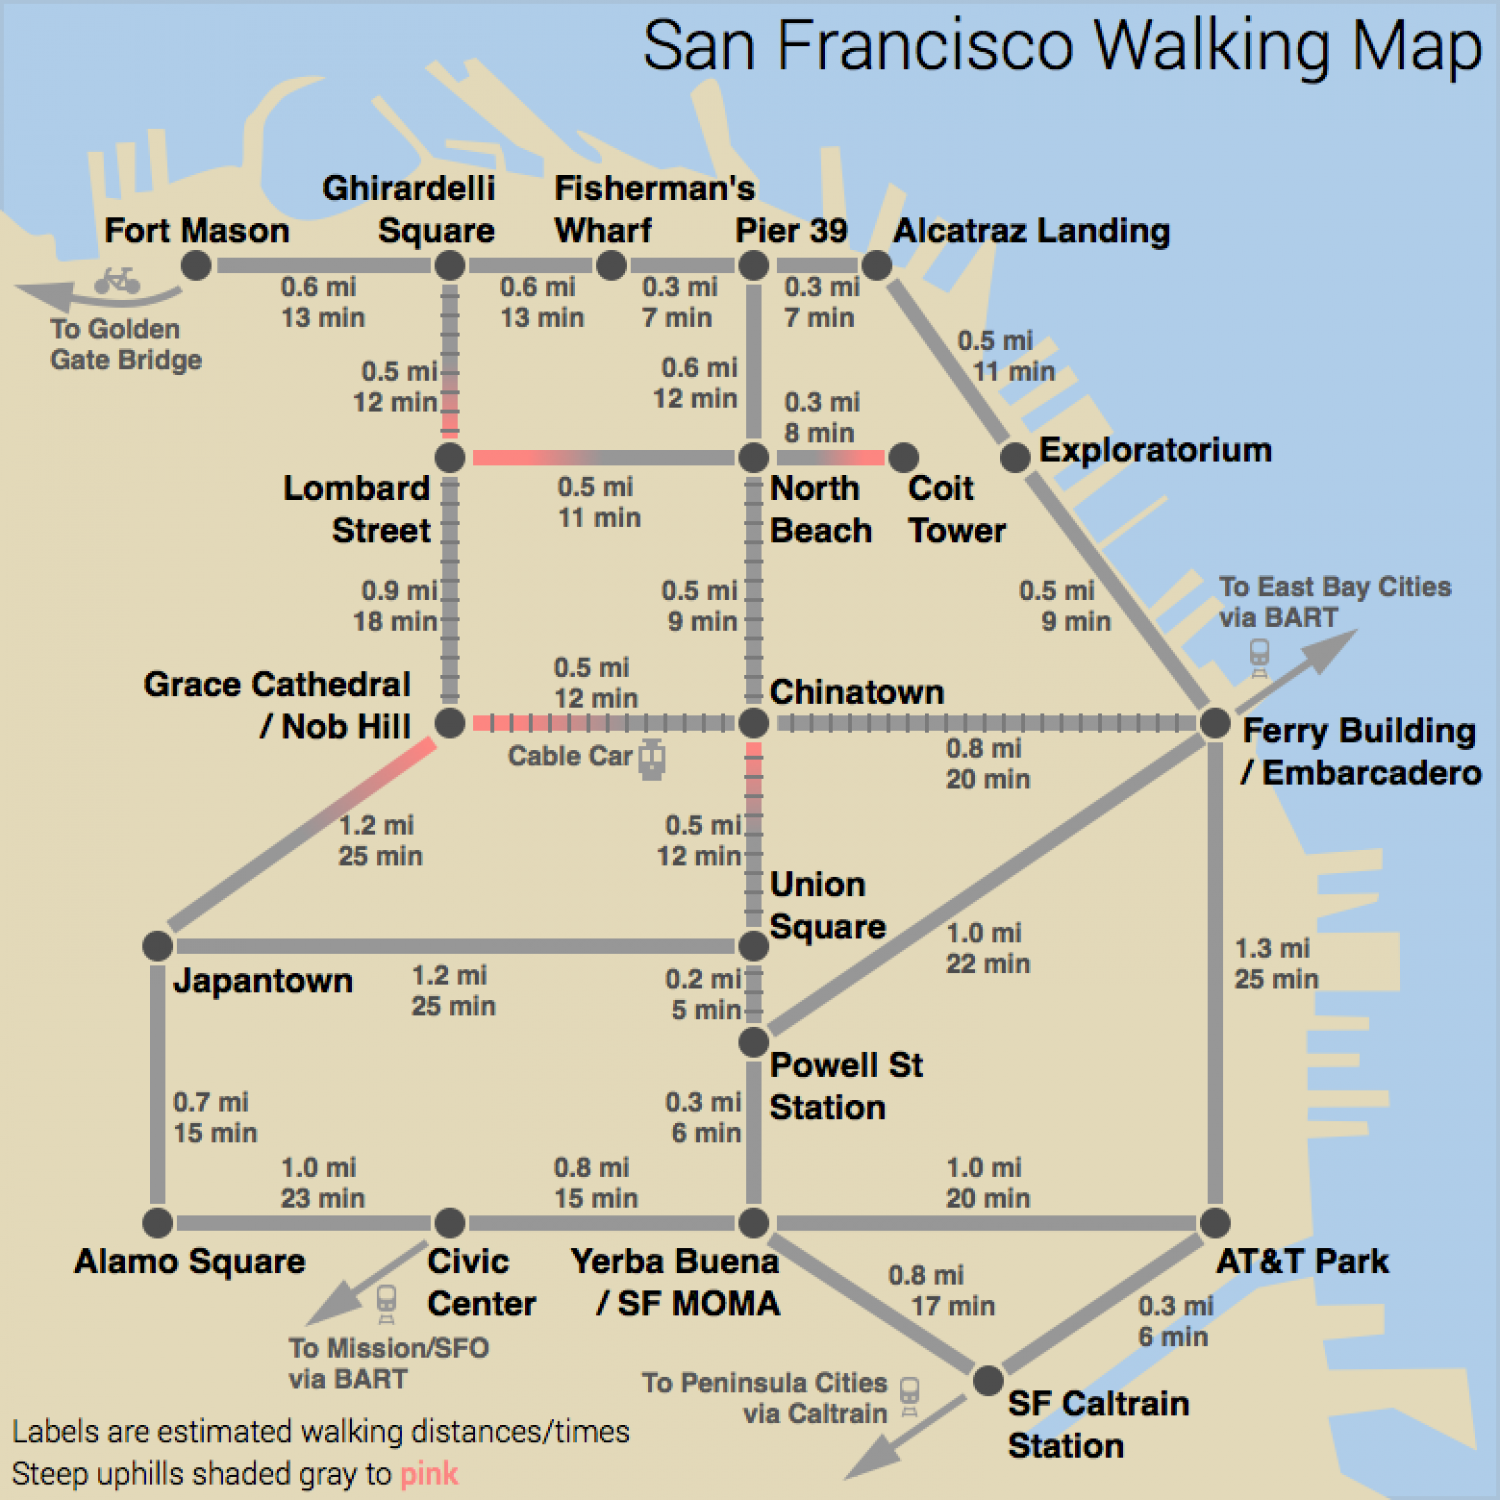 San Francisco Subway-Style Walking Map Infographic